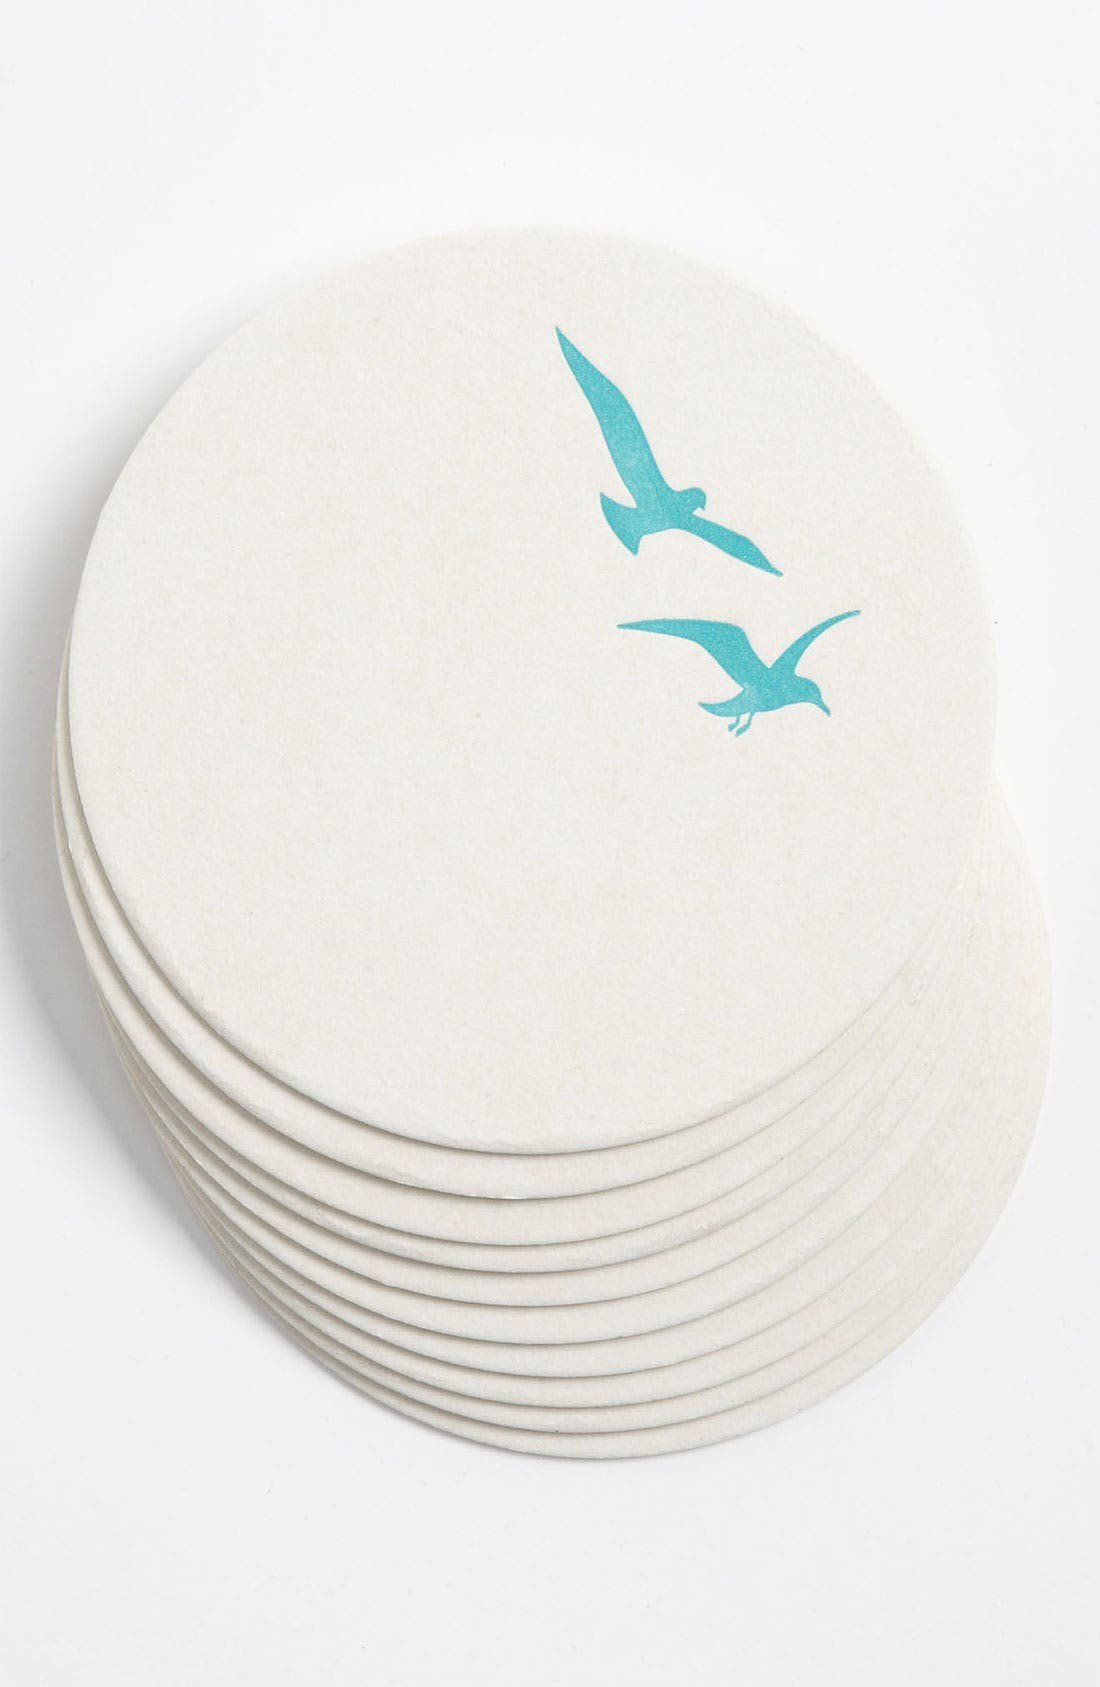 Main Image - 'Seagulls' Letterpress Coasters (Set of 10)